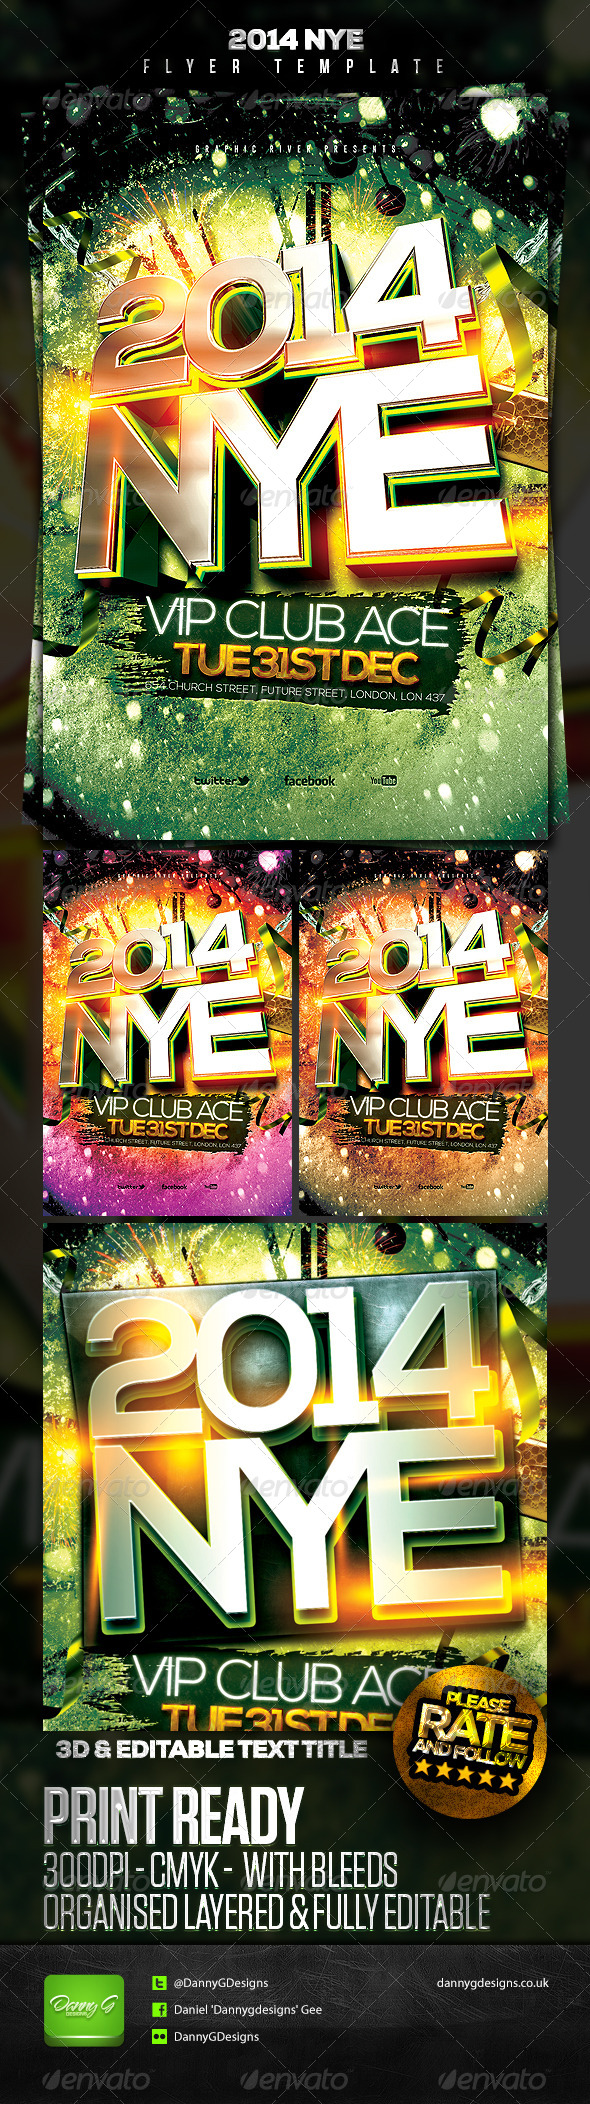 GraphicRiver 2014 NYE Flyer Template 2 6214290